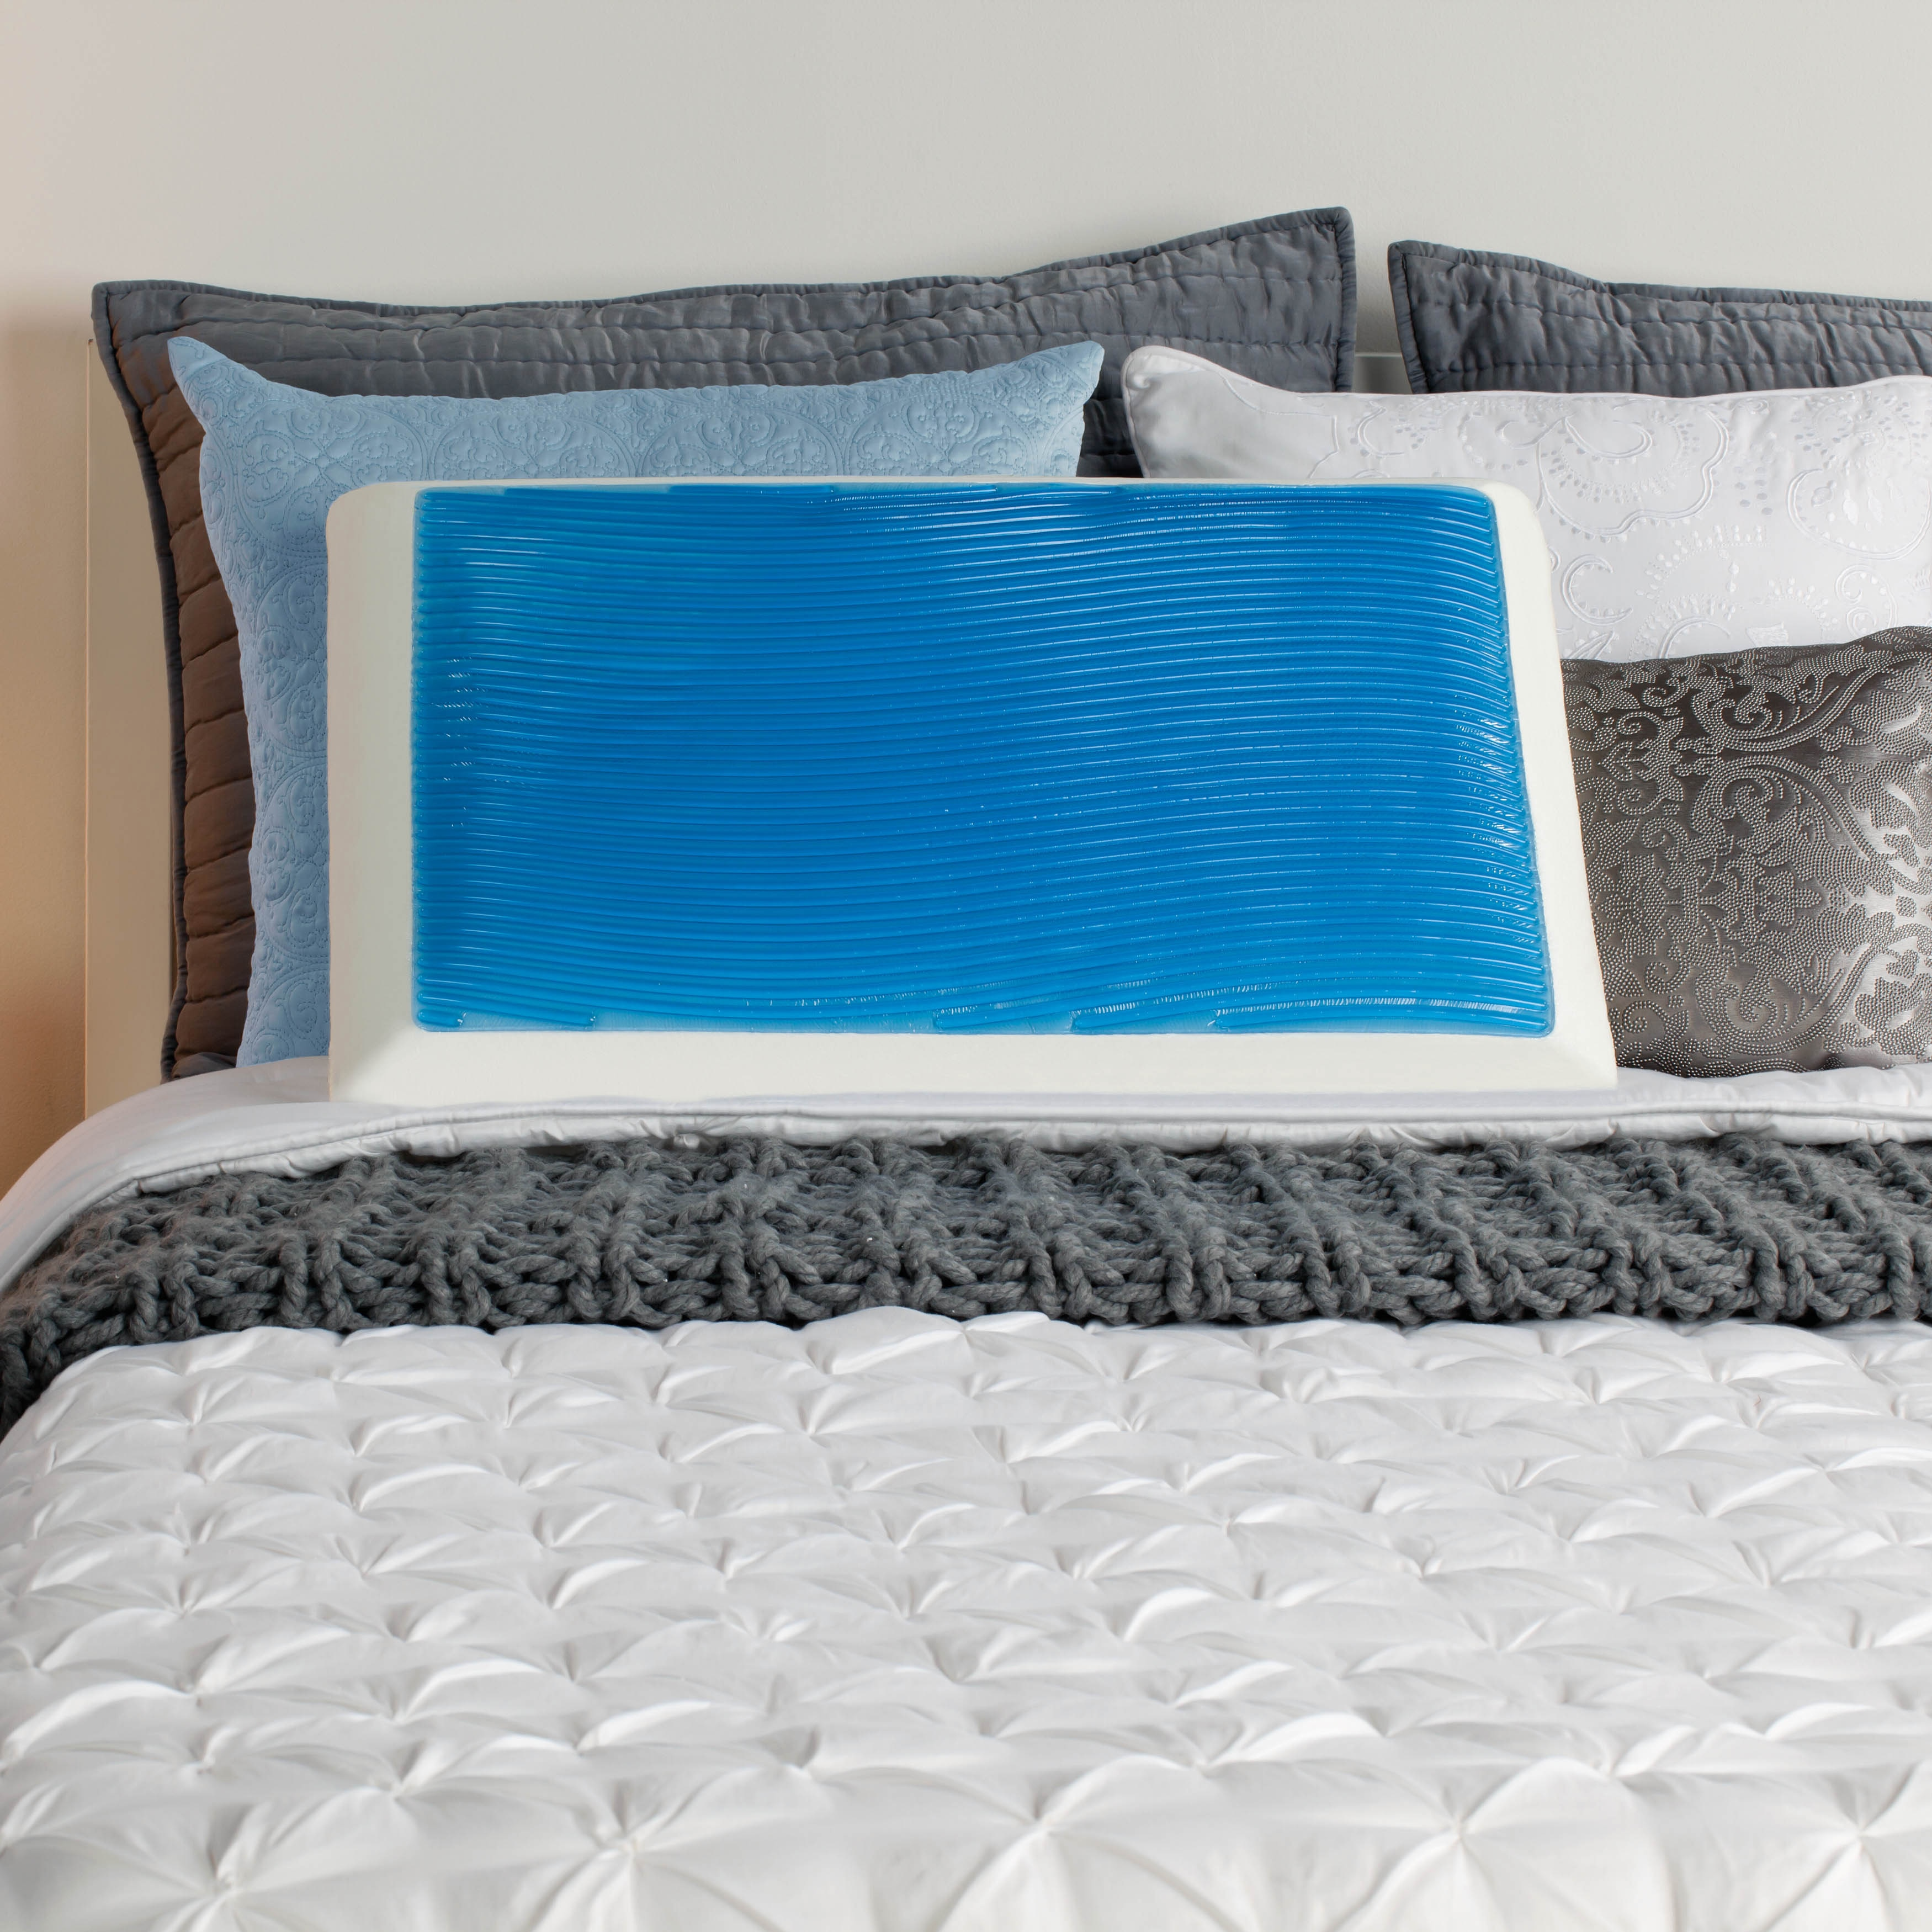 comfort revolution sealy memory foam and gel bed pillow with mesh